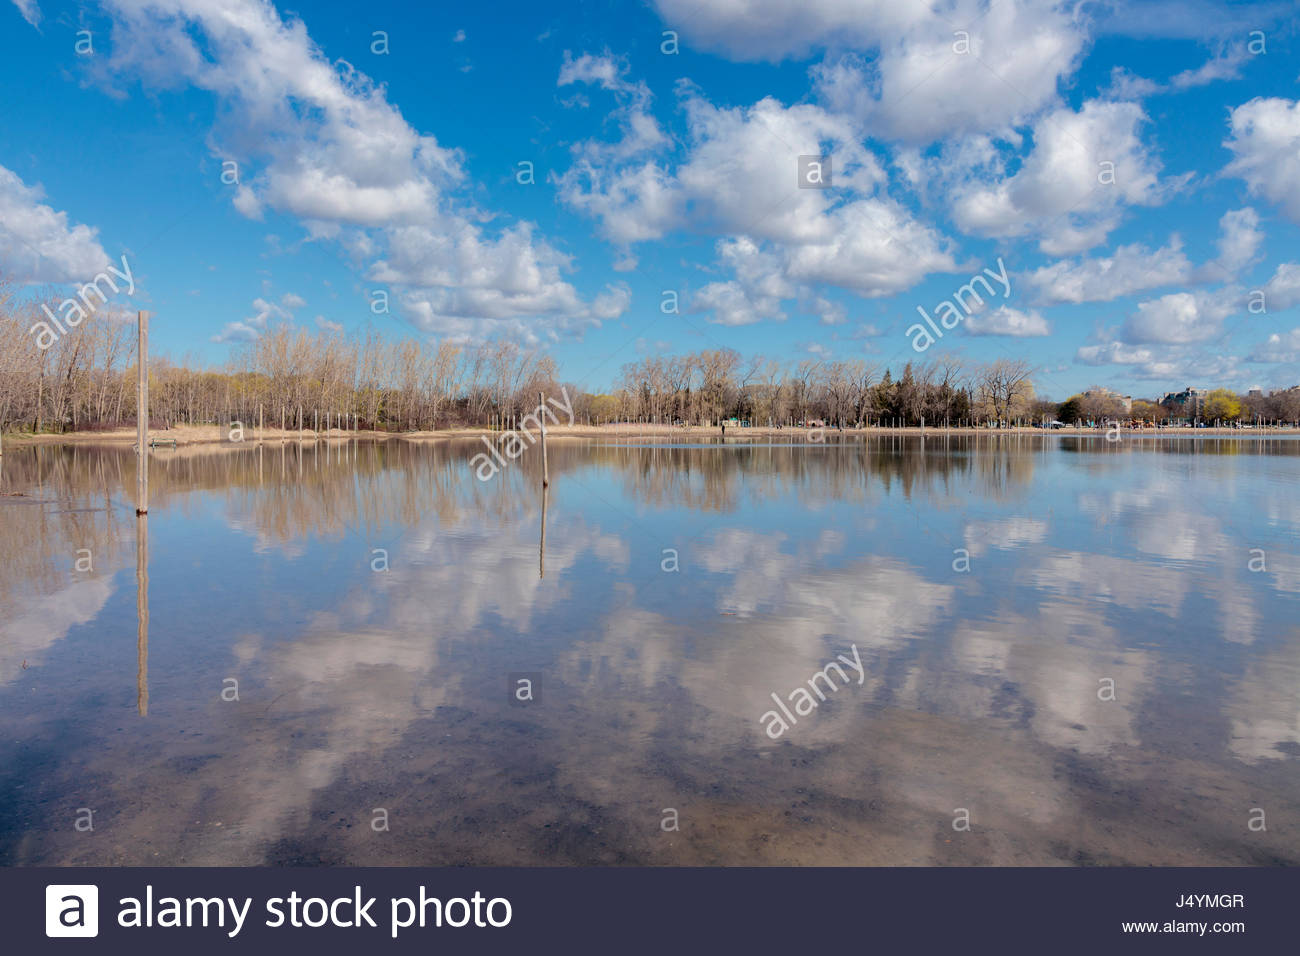 Cumulus clouds reflected in spring flooded beach volleyball courts in Toronto Ontario, Canada. partly cloudy - Stock Image